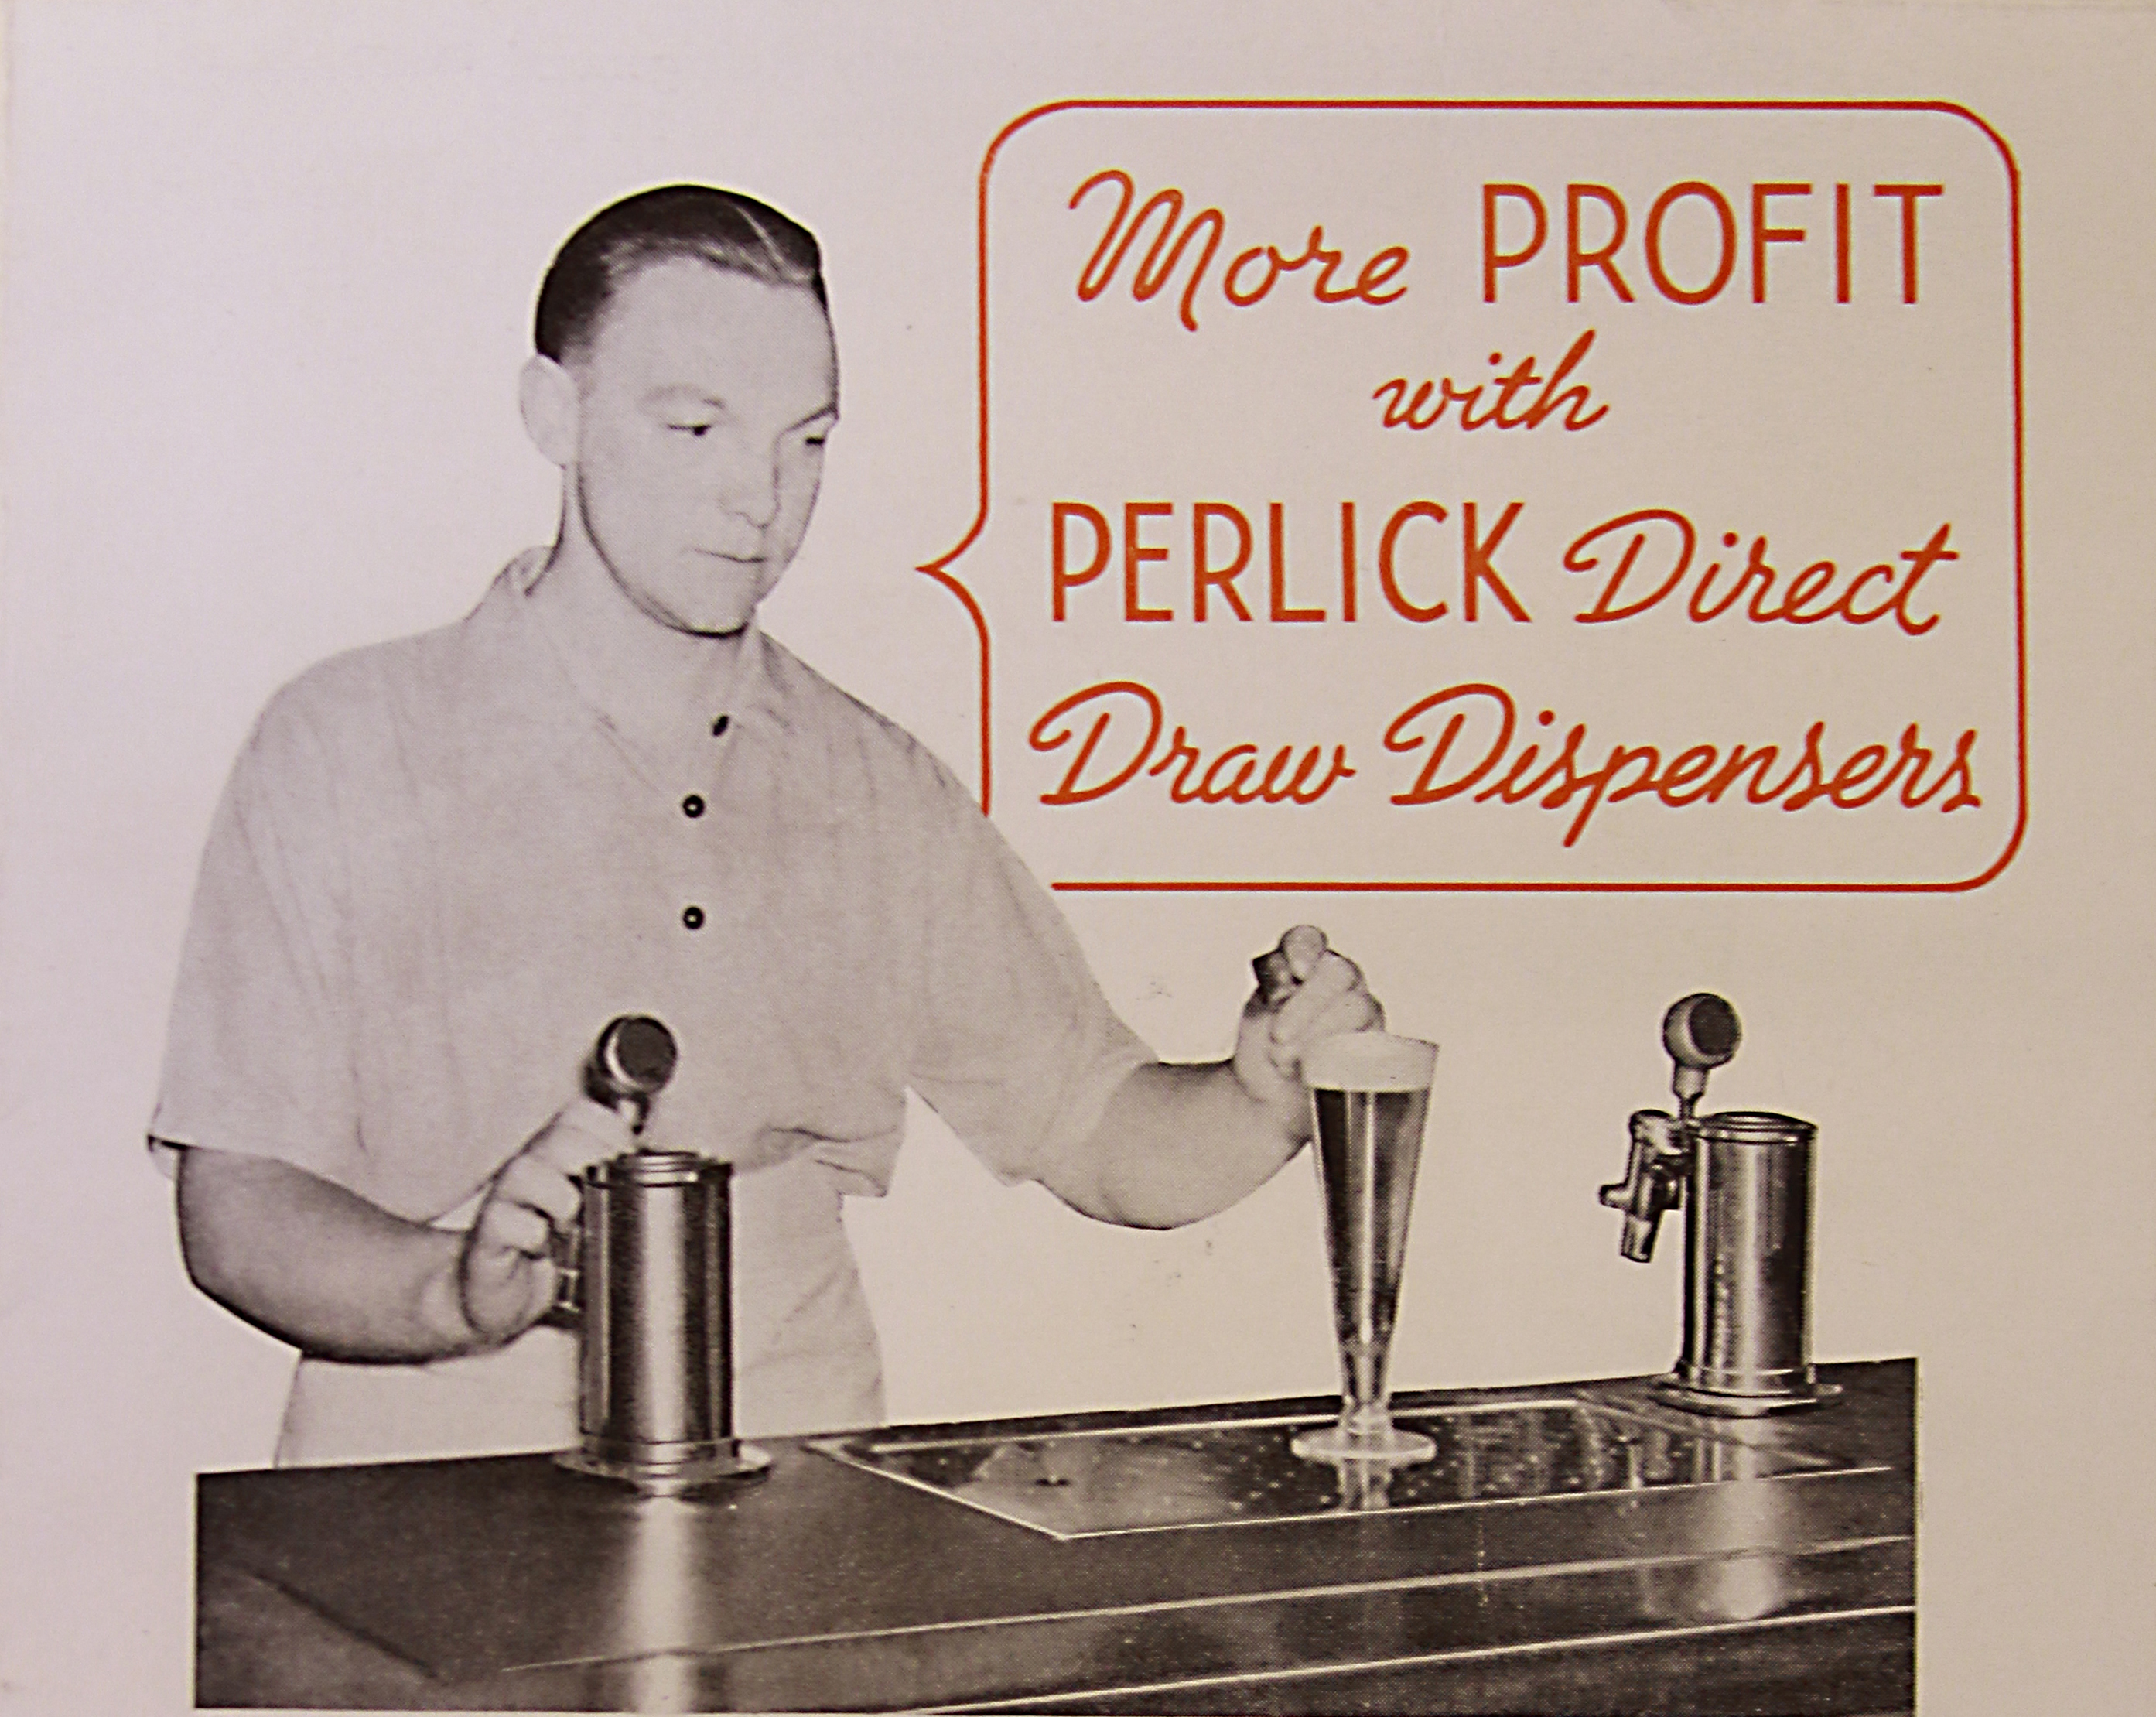 Perlick Direct Draw Dispensers